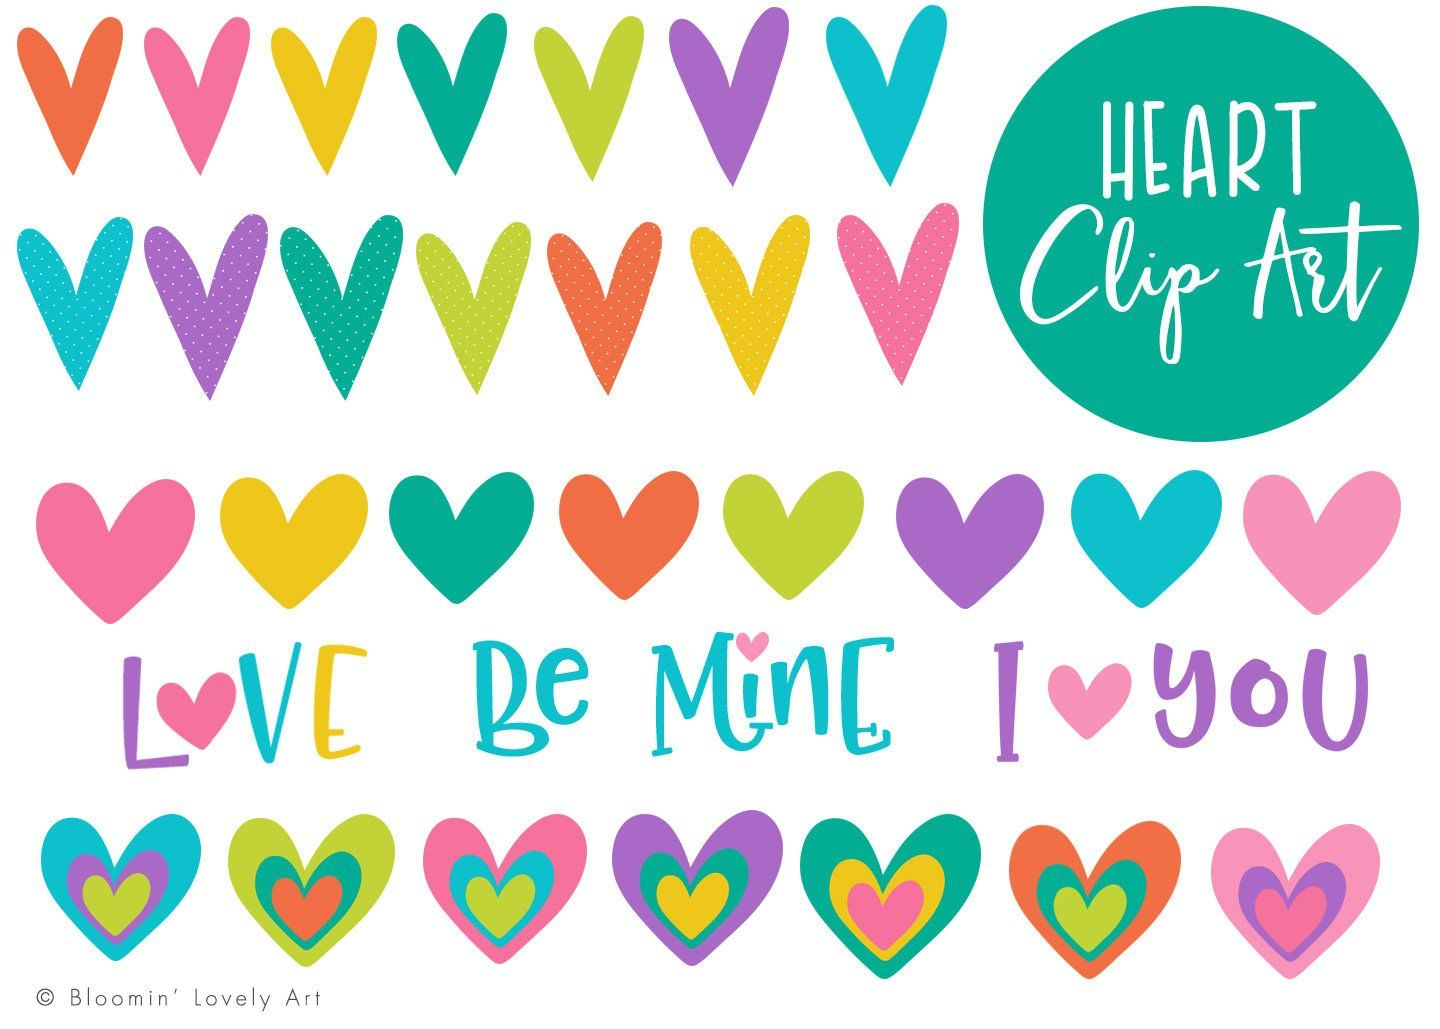 Heart Clip Art Colorful Hearts Clipart Valentines Clip Art